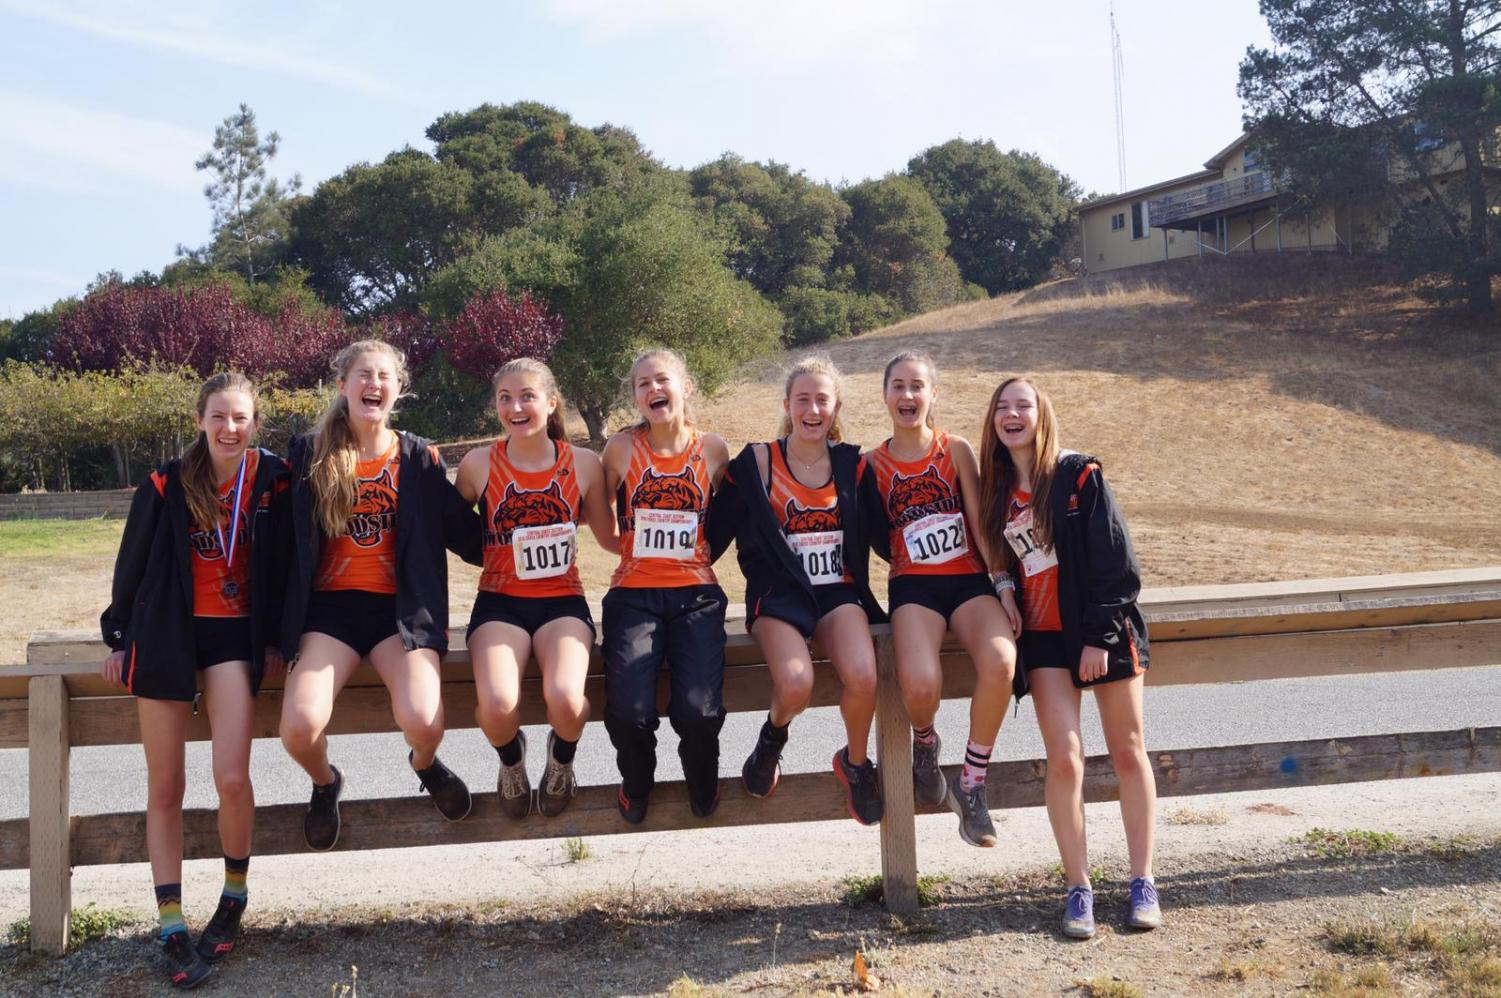 The varsity girls celebrate a great end to their season after running at Central Coast Sectionals Championship meet